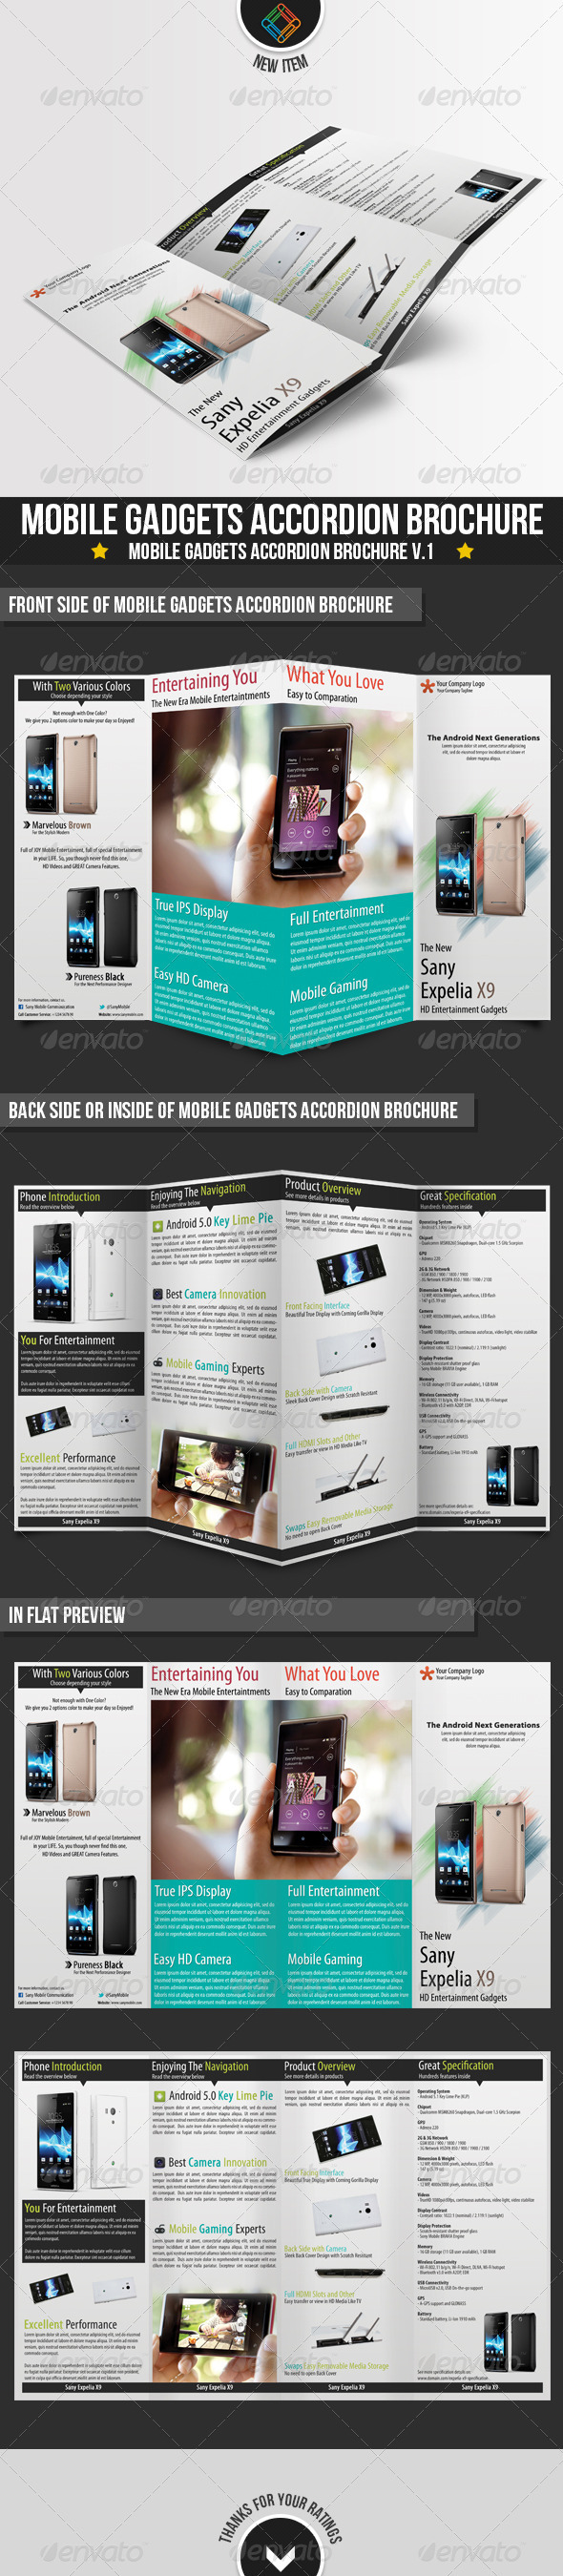 Modern Mobile Gadgets Accordion Brochures - Brochures Print Templates